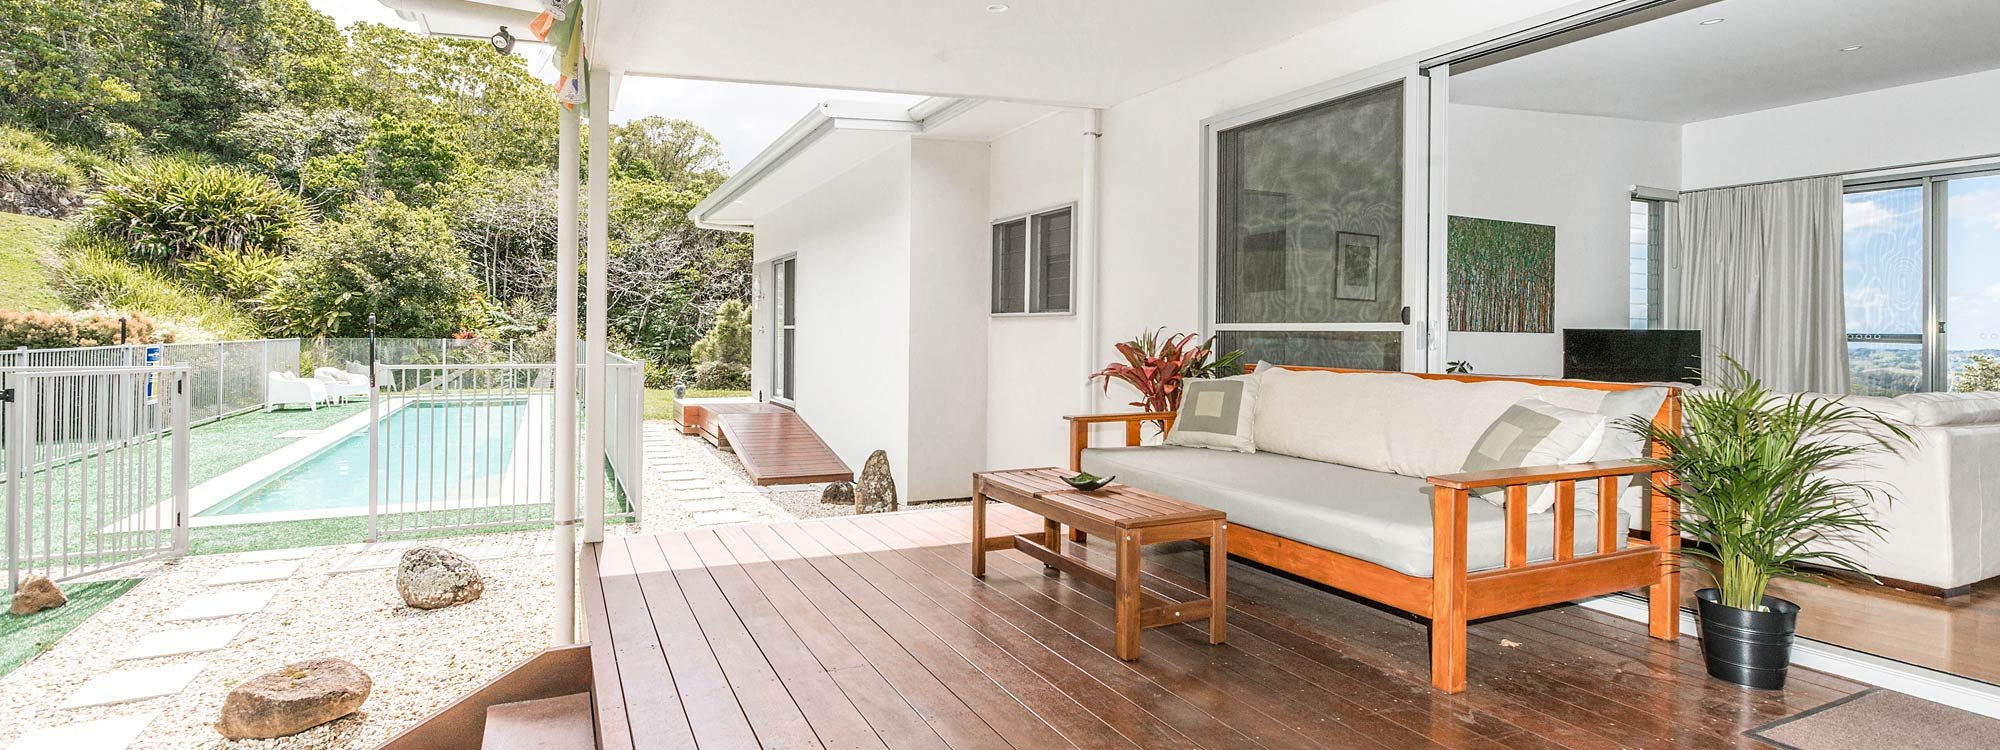 Jali Burugar - Byron Bay - Extra Pool and Daybed